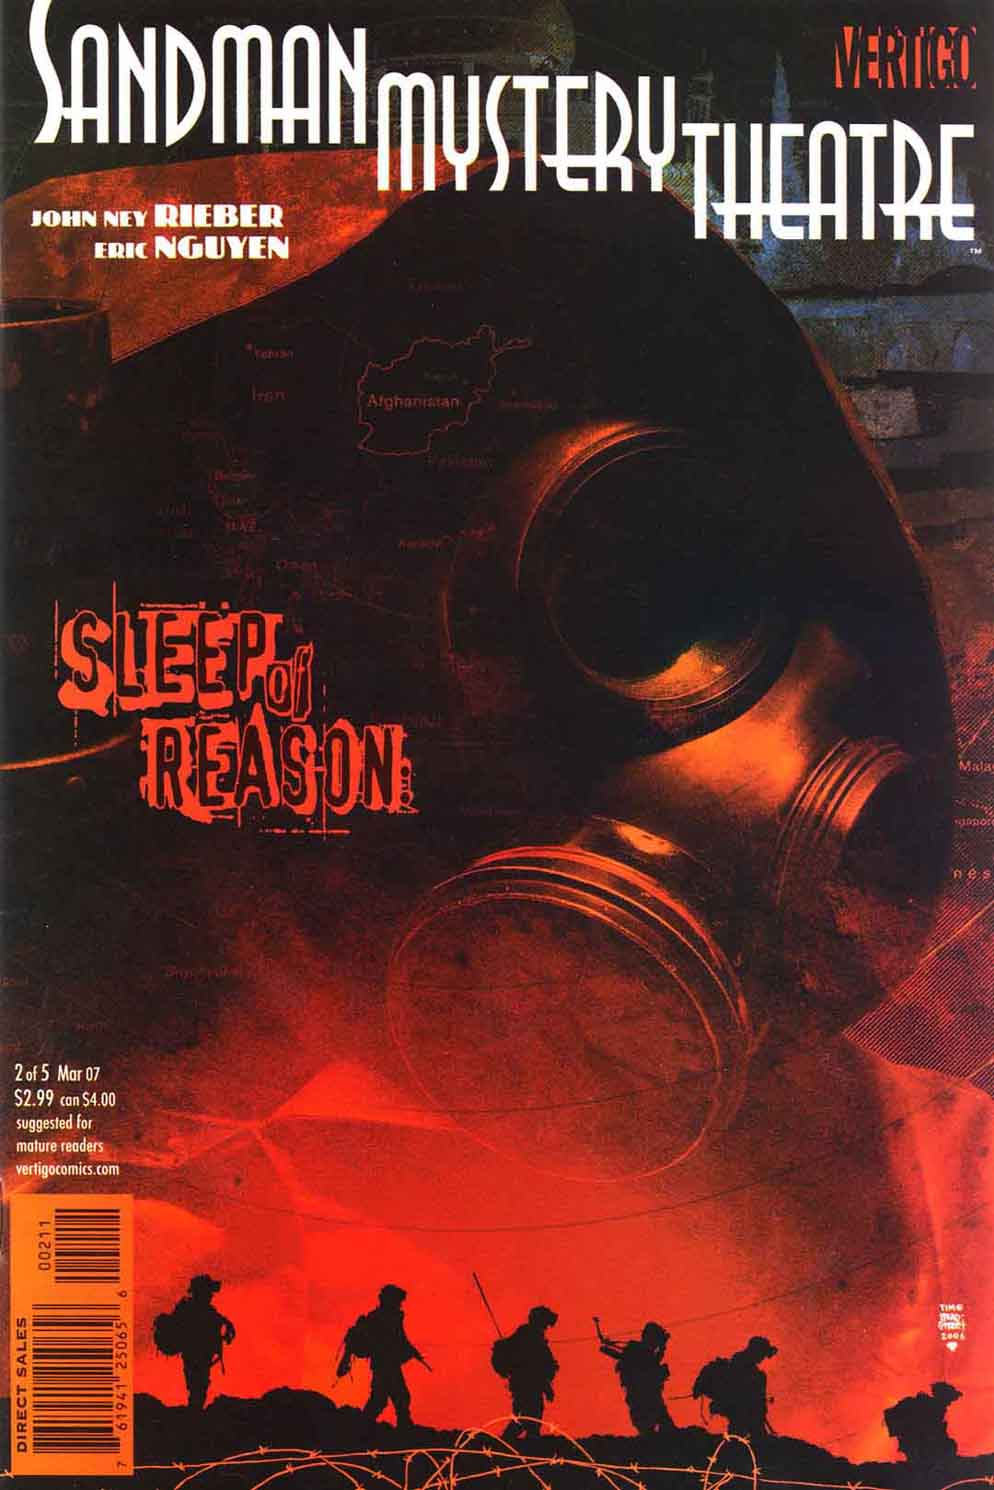 image sandman mystery theater sleep of reason 2 jpg dc